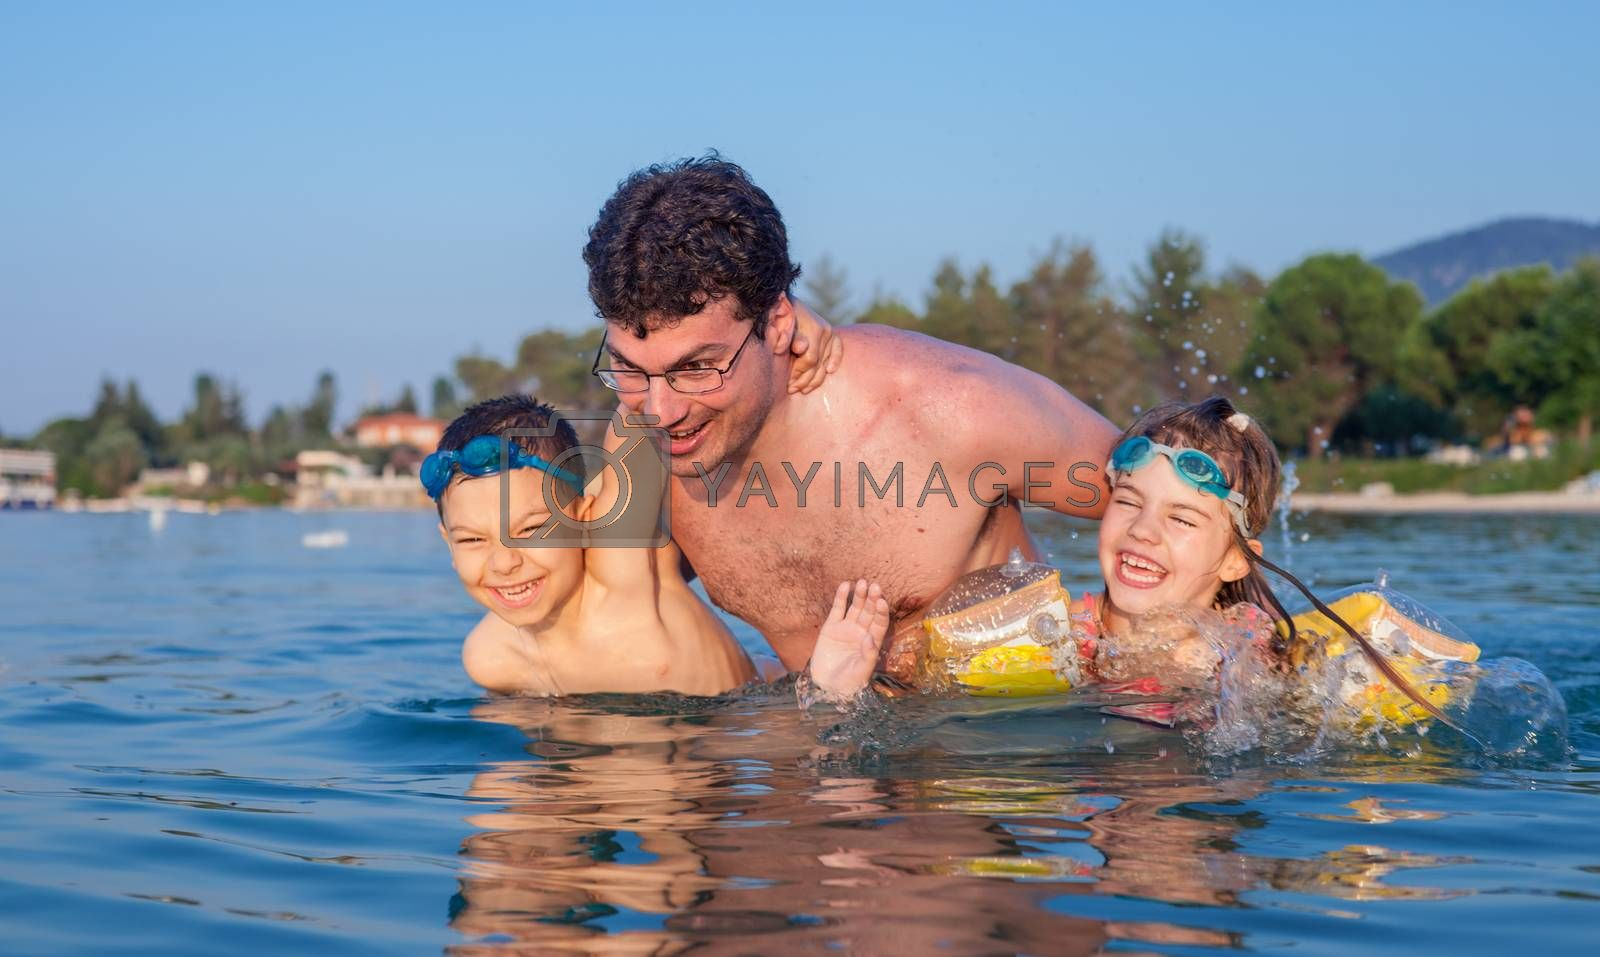 Young father having fun in sea waters during vacation in a hot summer day with his son and daughter.